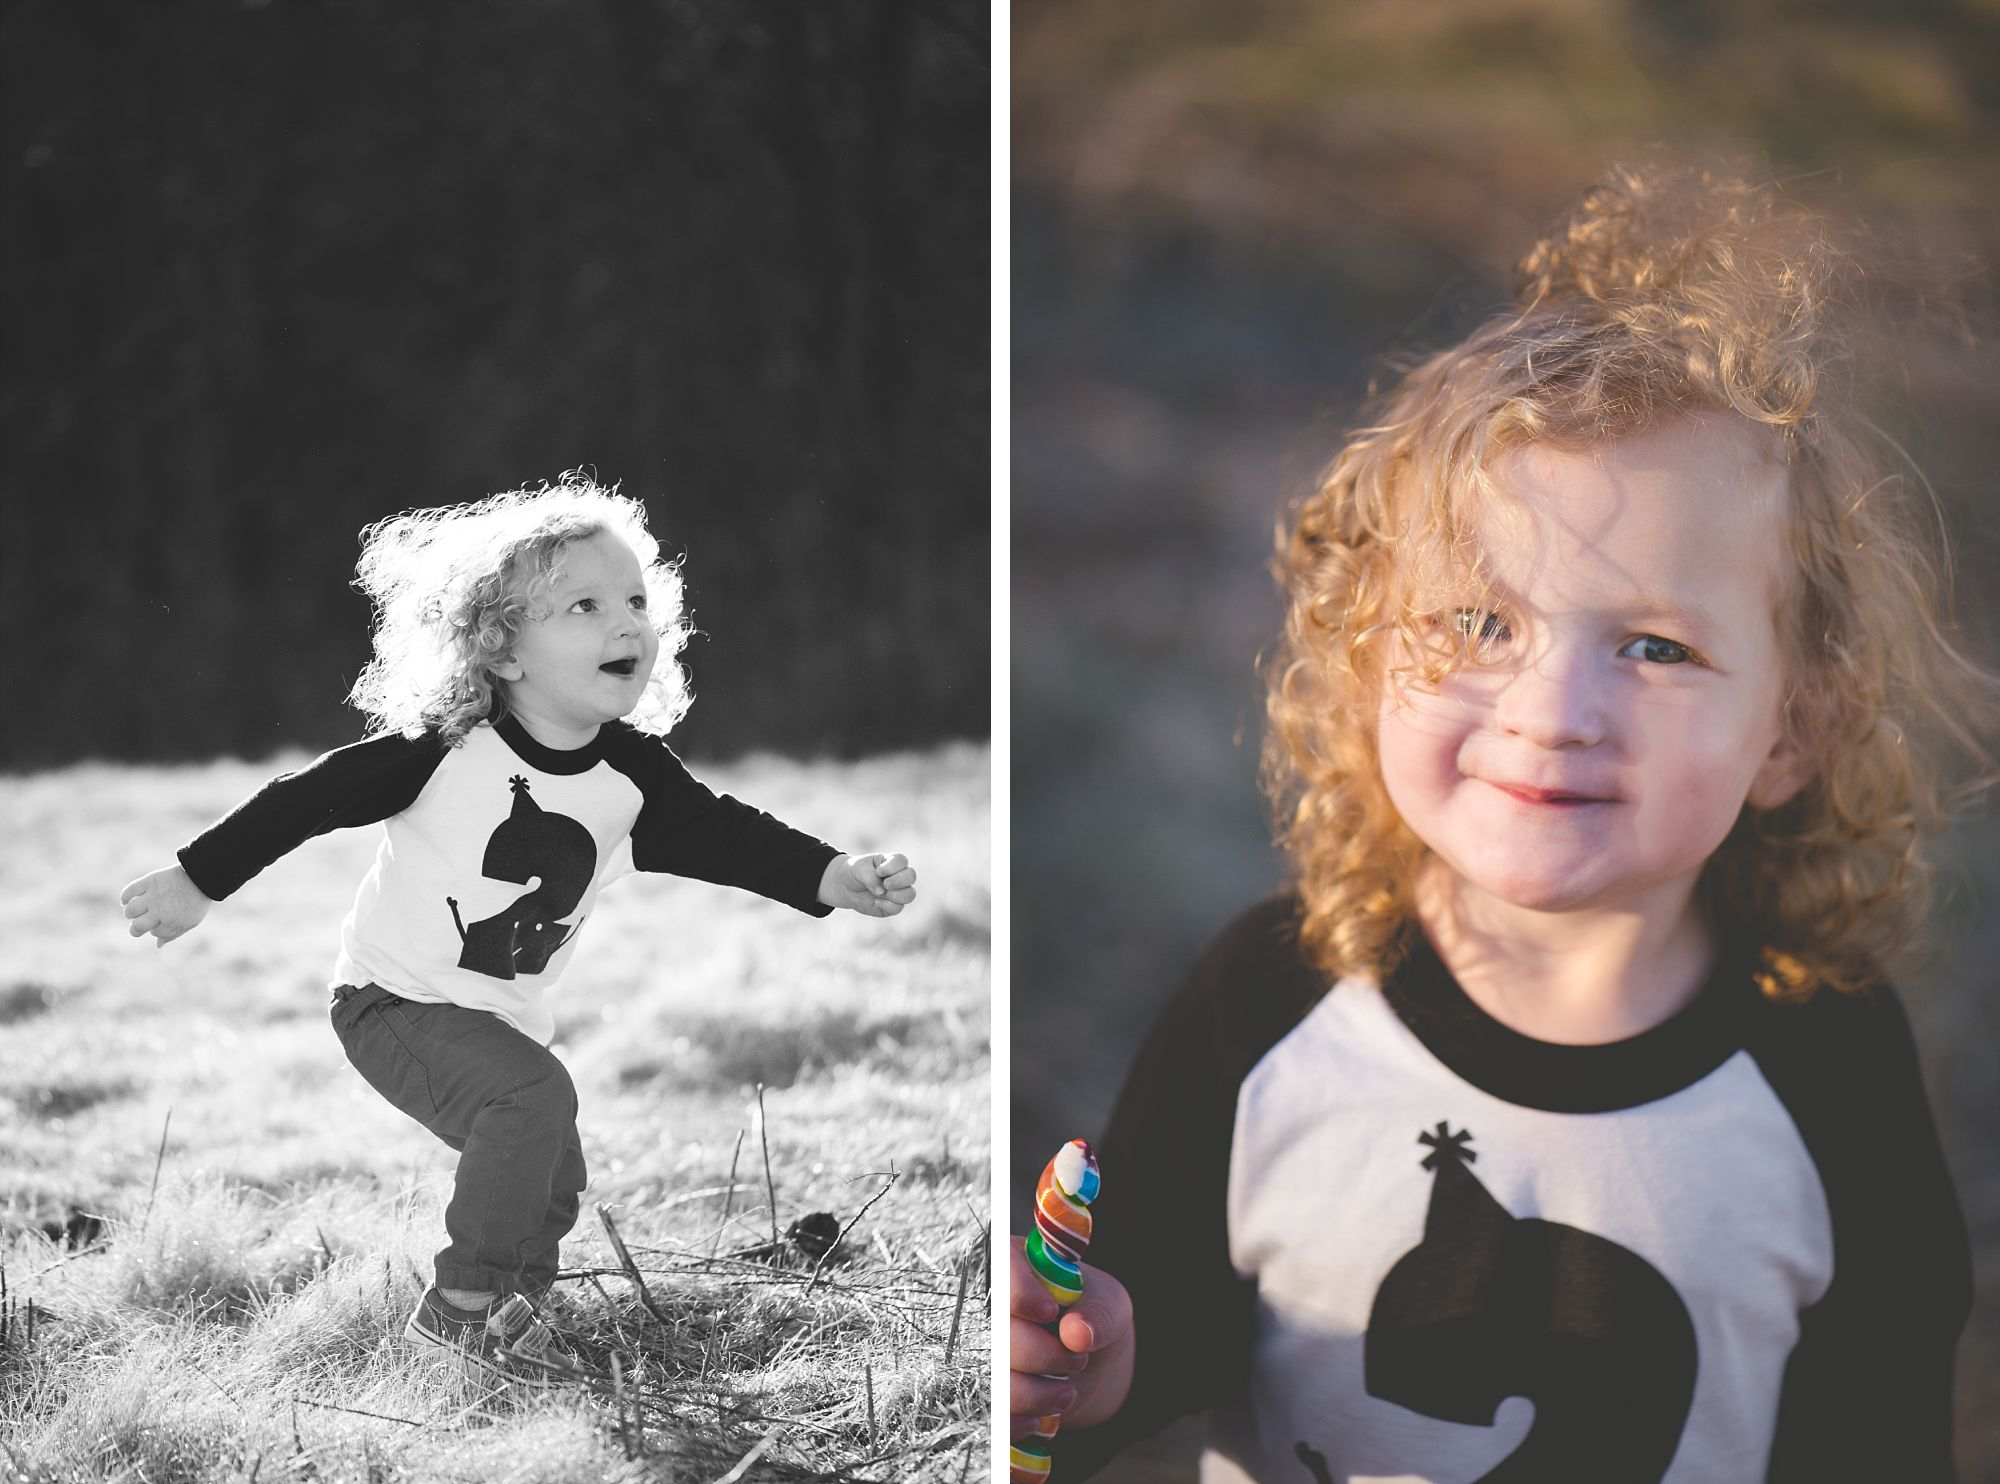 Boy with curly hair plays outside in the sunlight on his second birthday